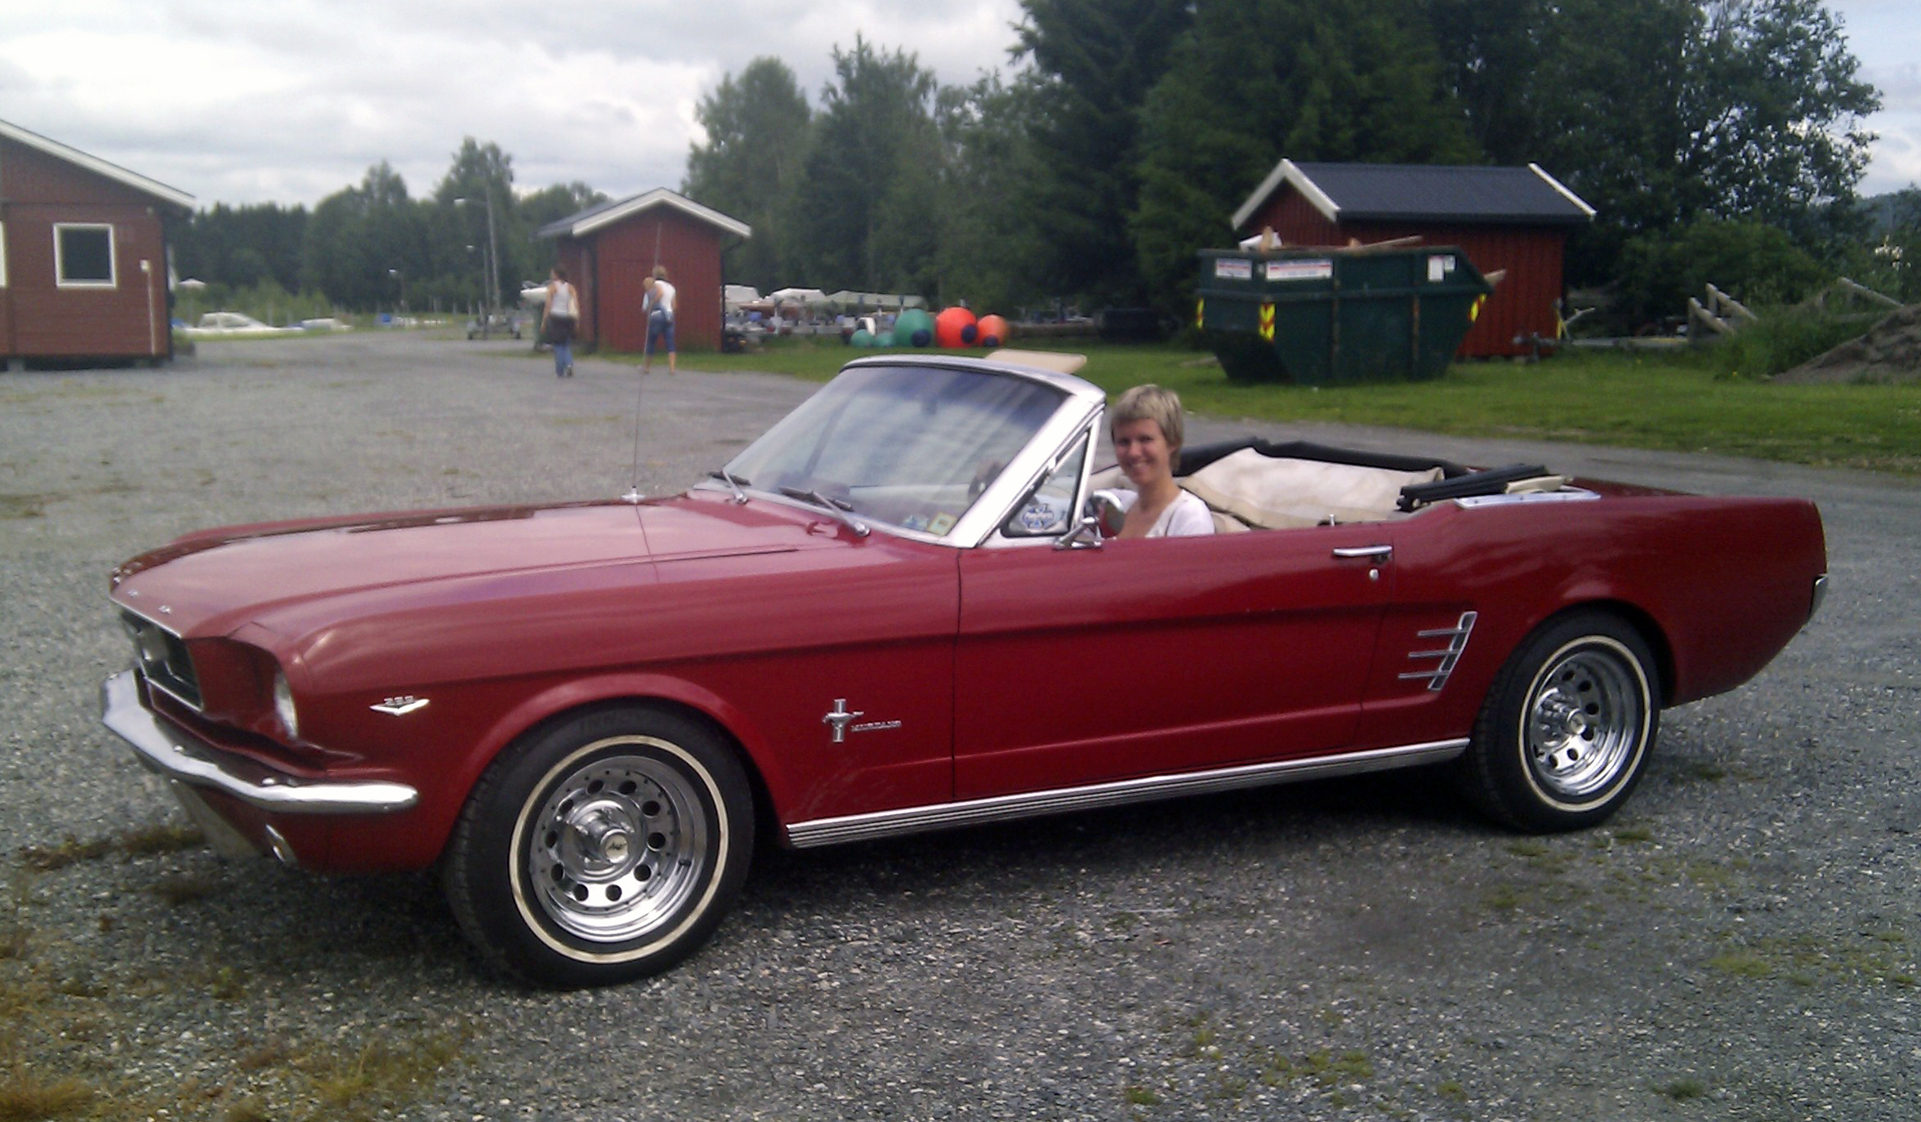 093-1966 Ford Mustang convertible 01. Eiere- Medle